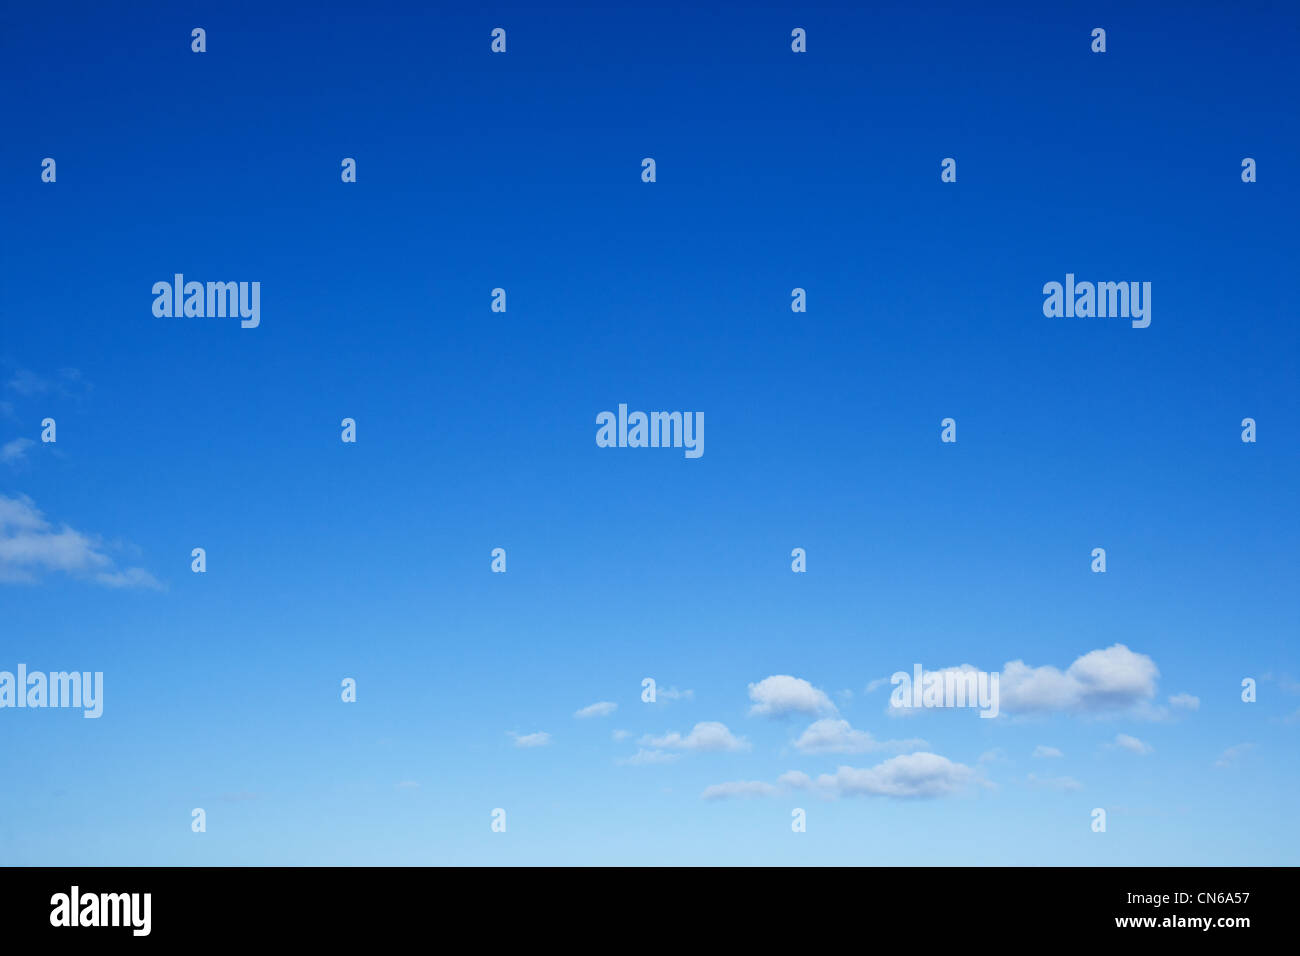 Blue Sky with small clouds - Stock Image